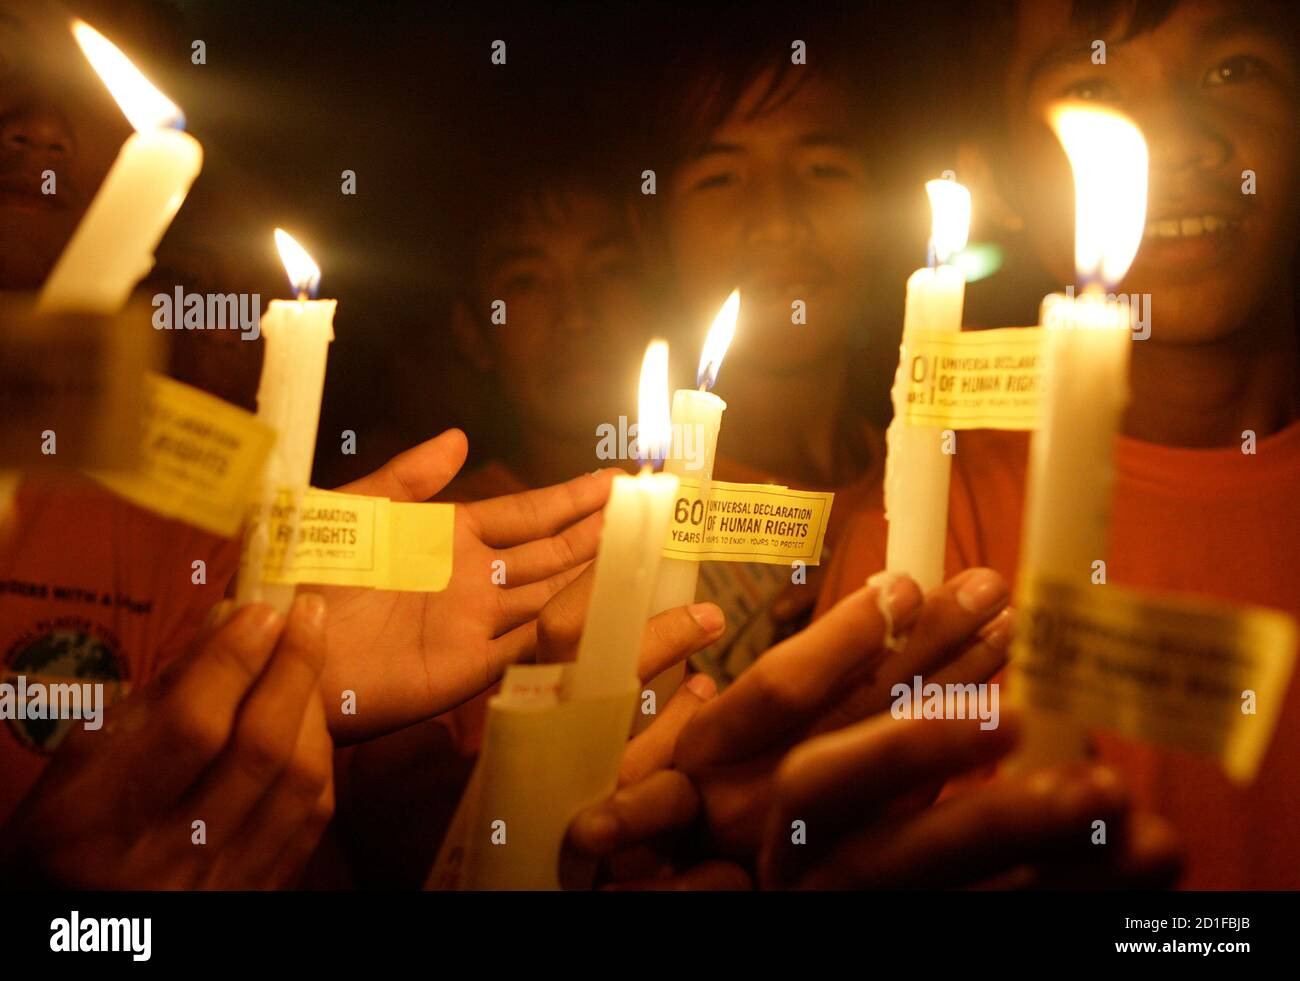 https www alamy com youths hold candles during a candle lighting ceremony to mark the 60th anniversary of the universal declaration of human rights in manila december 10 2008 reuterscheryl ravelo philippines image379581171 html